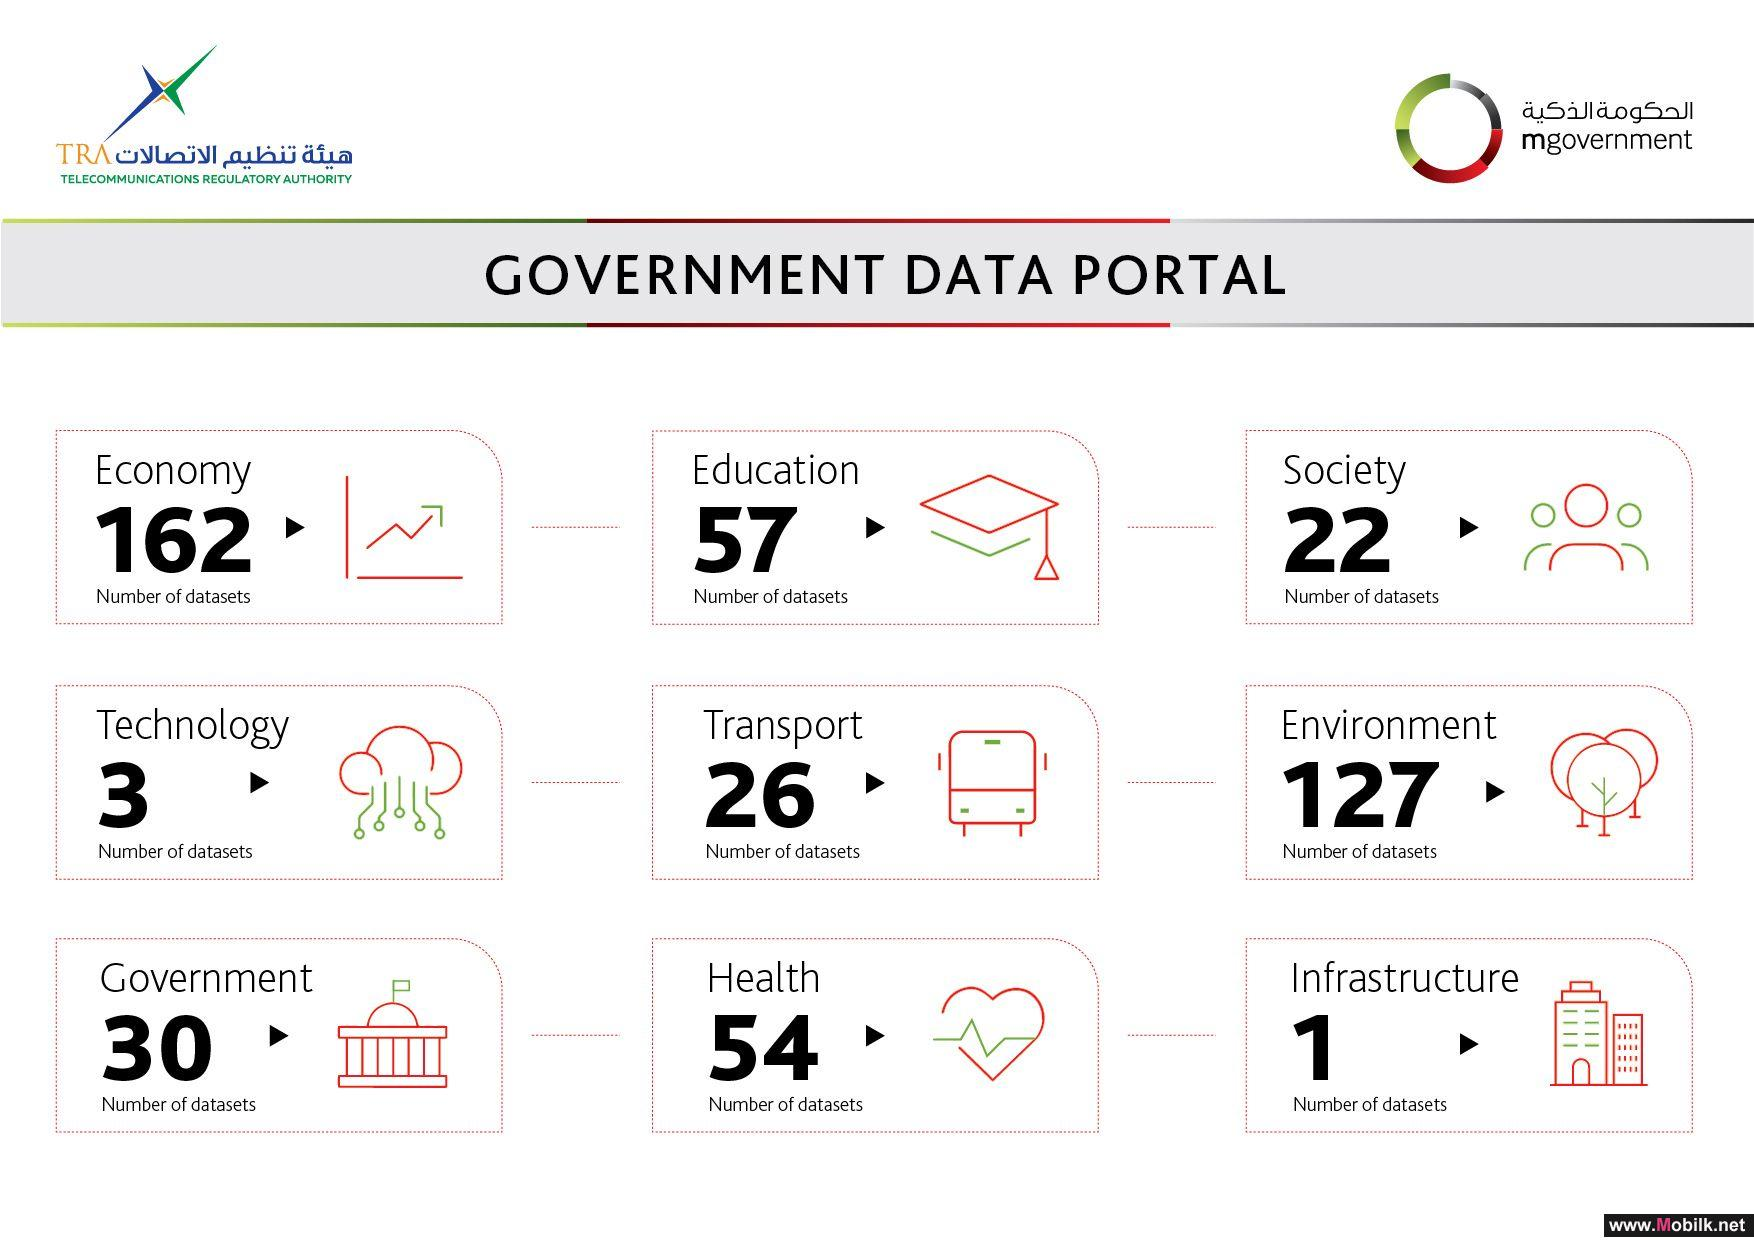 More Than 500 Integrated Data Systems on the Government Data Portal